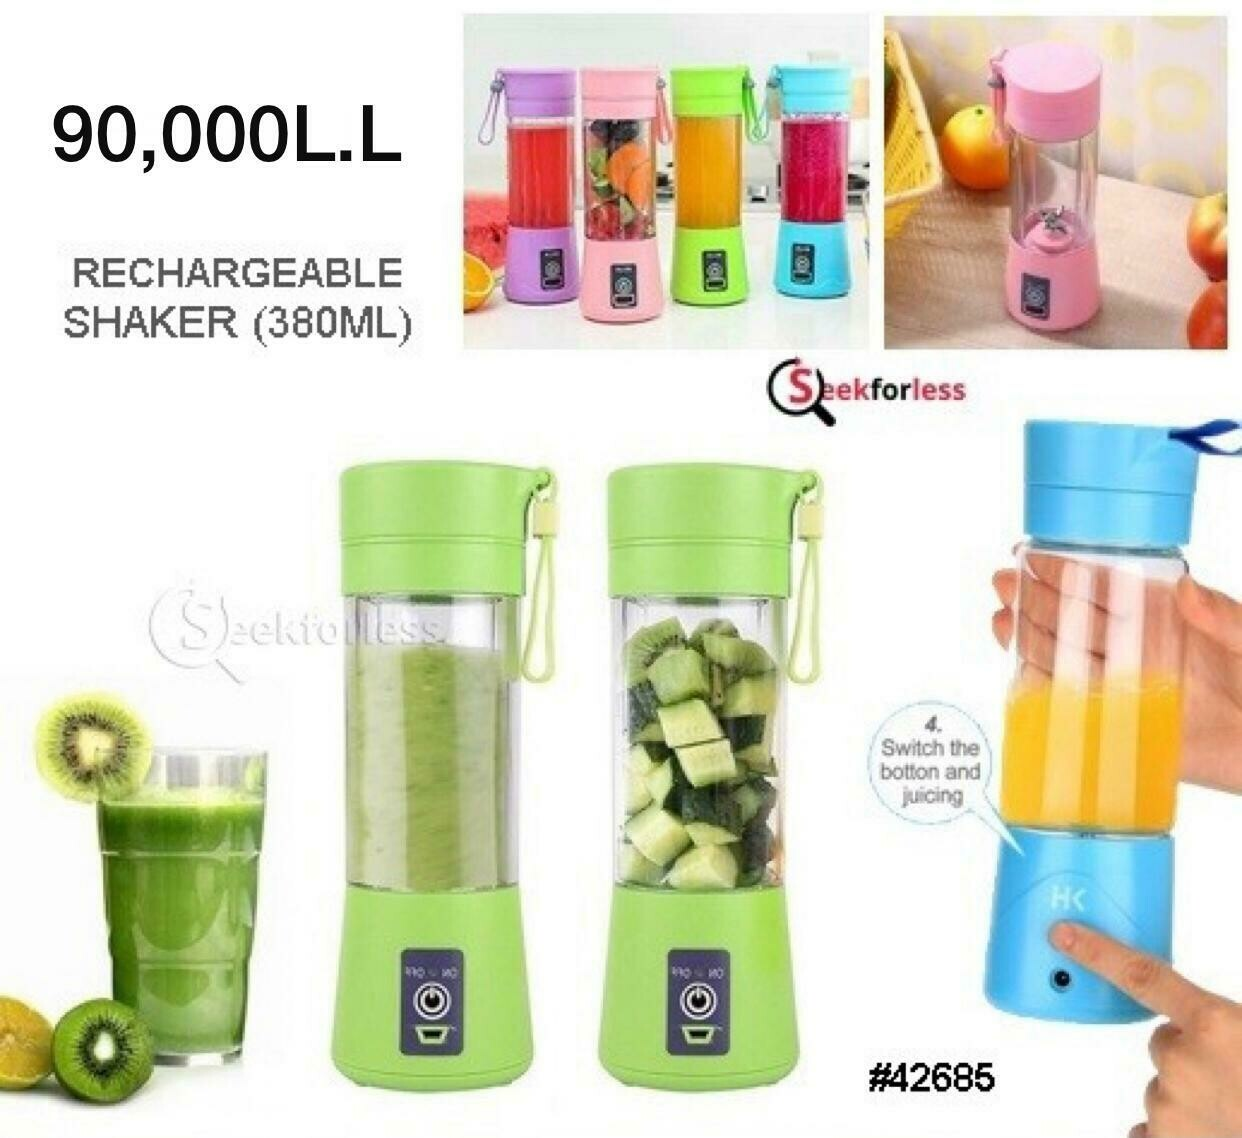 Rechargeable Shaker